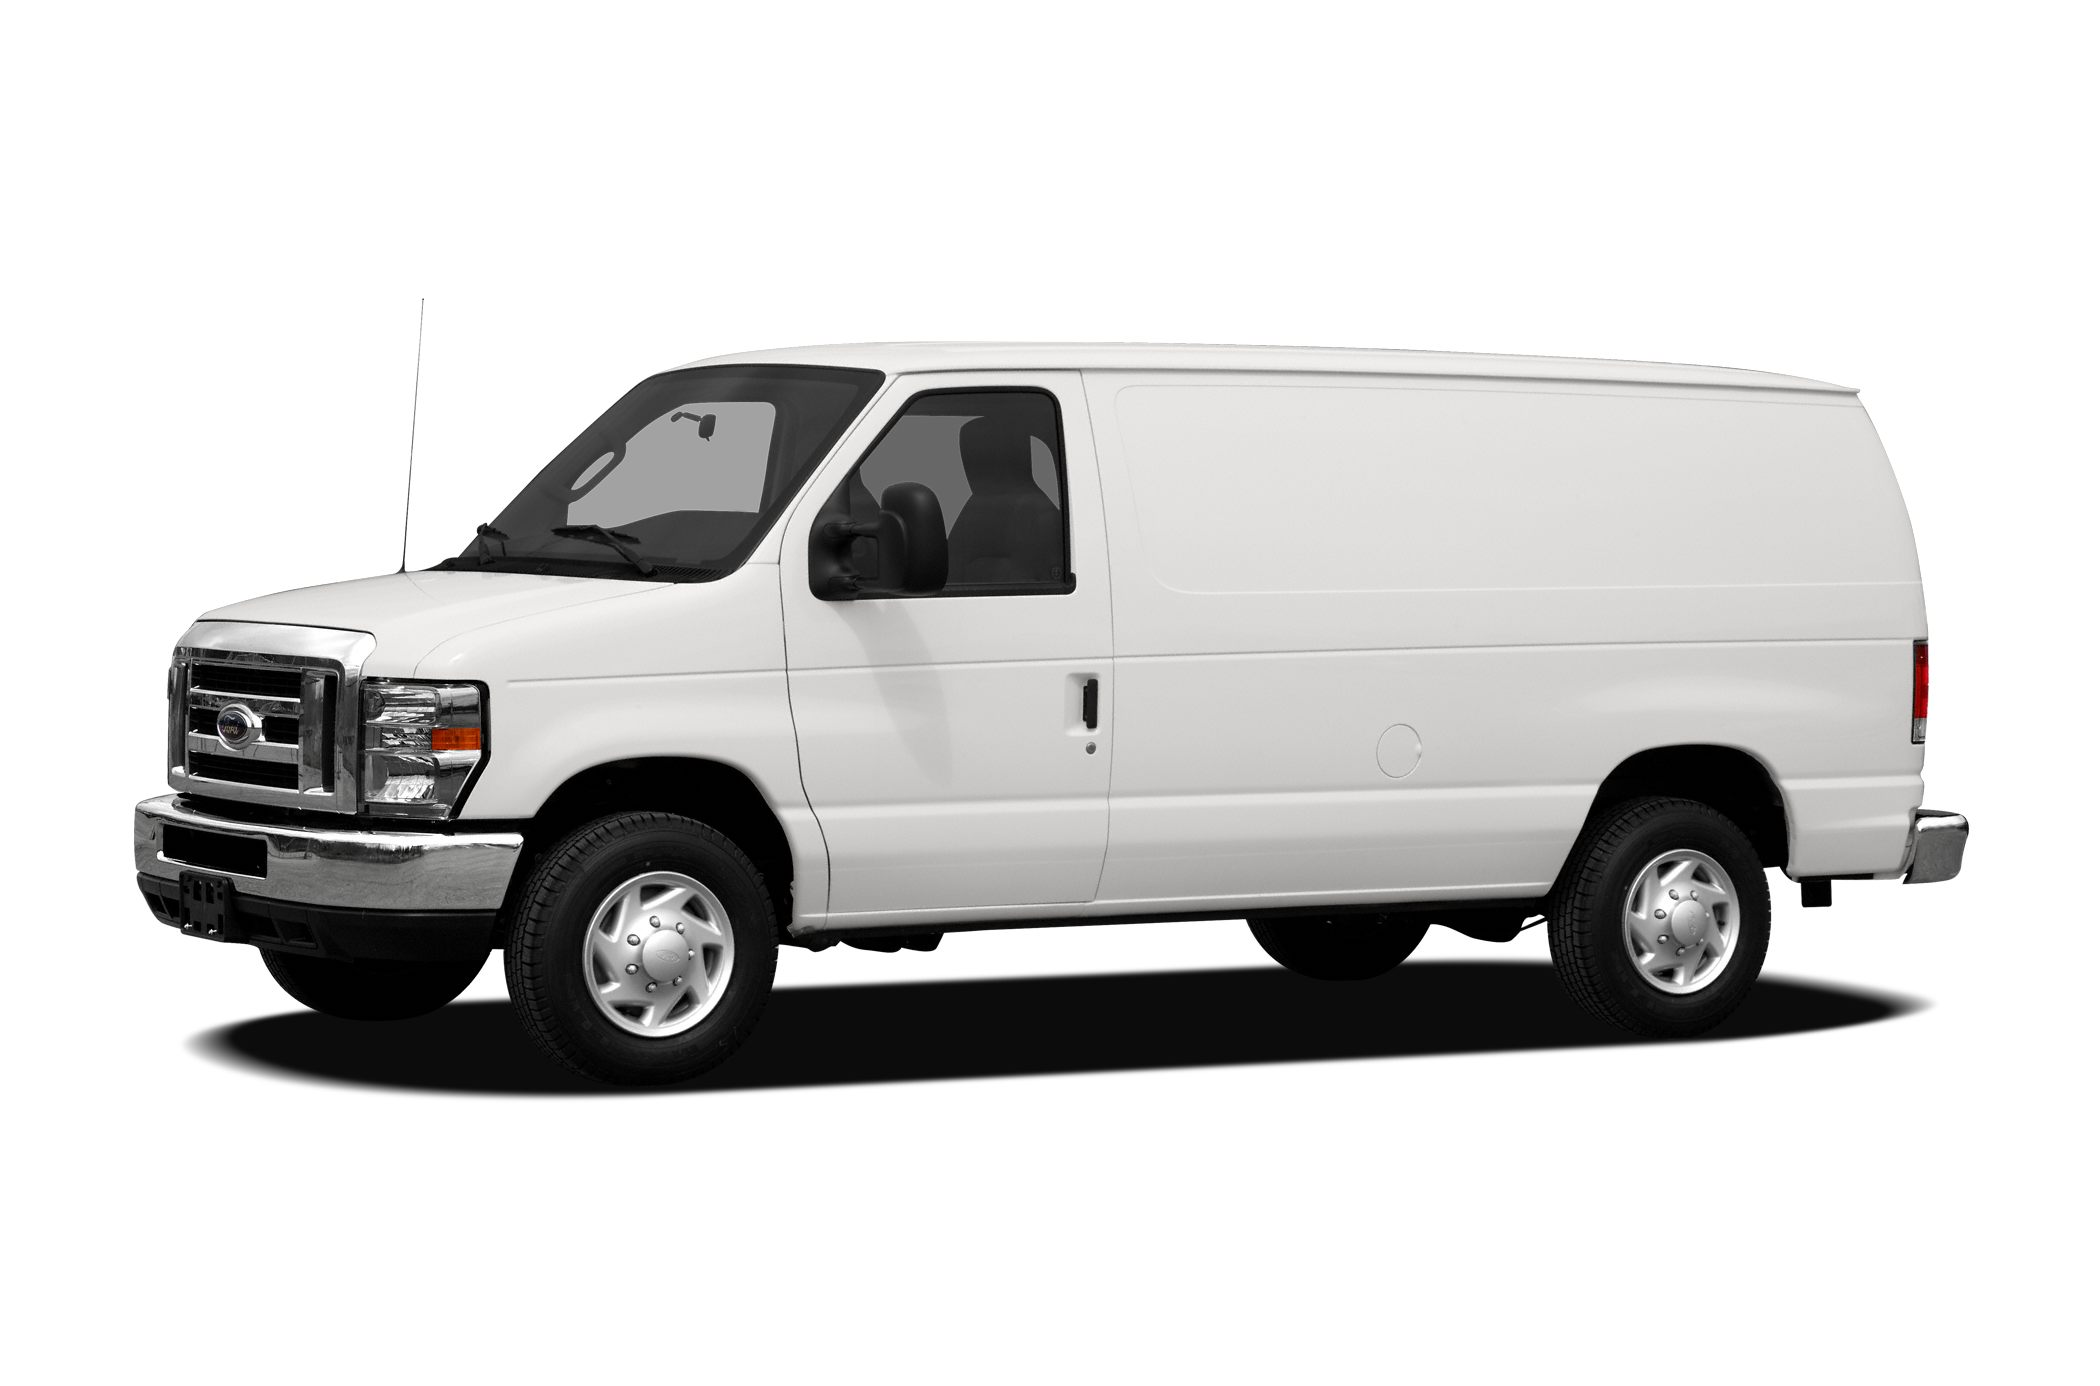 2009 Ford Econoline 150  Clean Carfax - 1 Owner - Interior Shelves - Air Conditioning AMFM radio